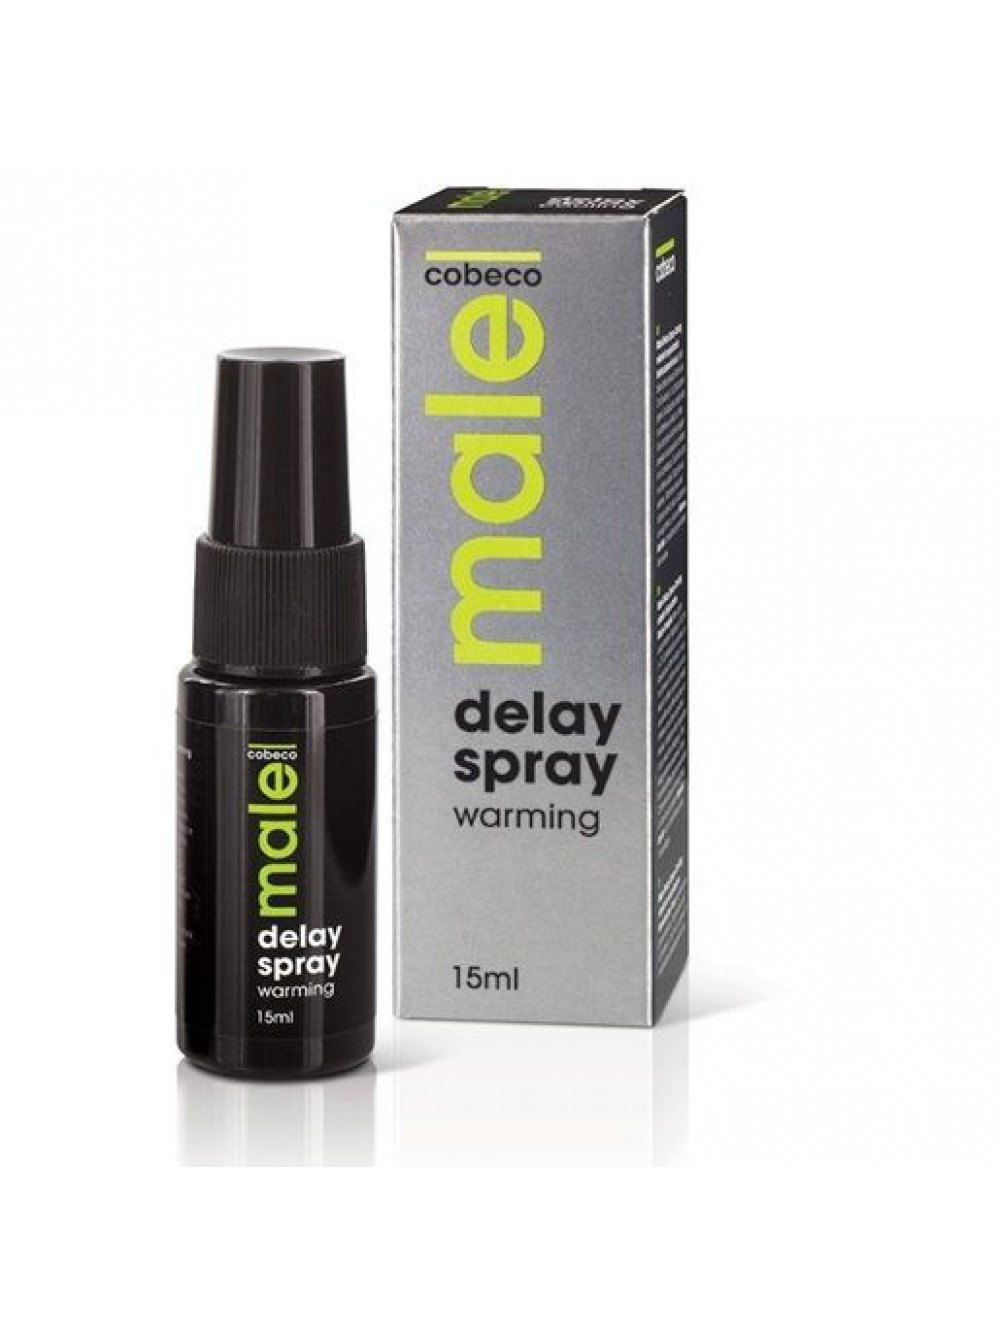 MALE COBECO WARMING DELAY SPRAY 15 ML